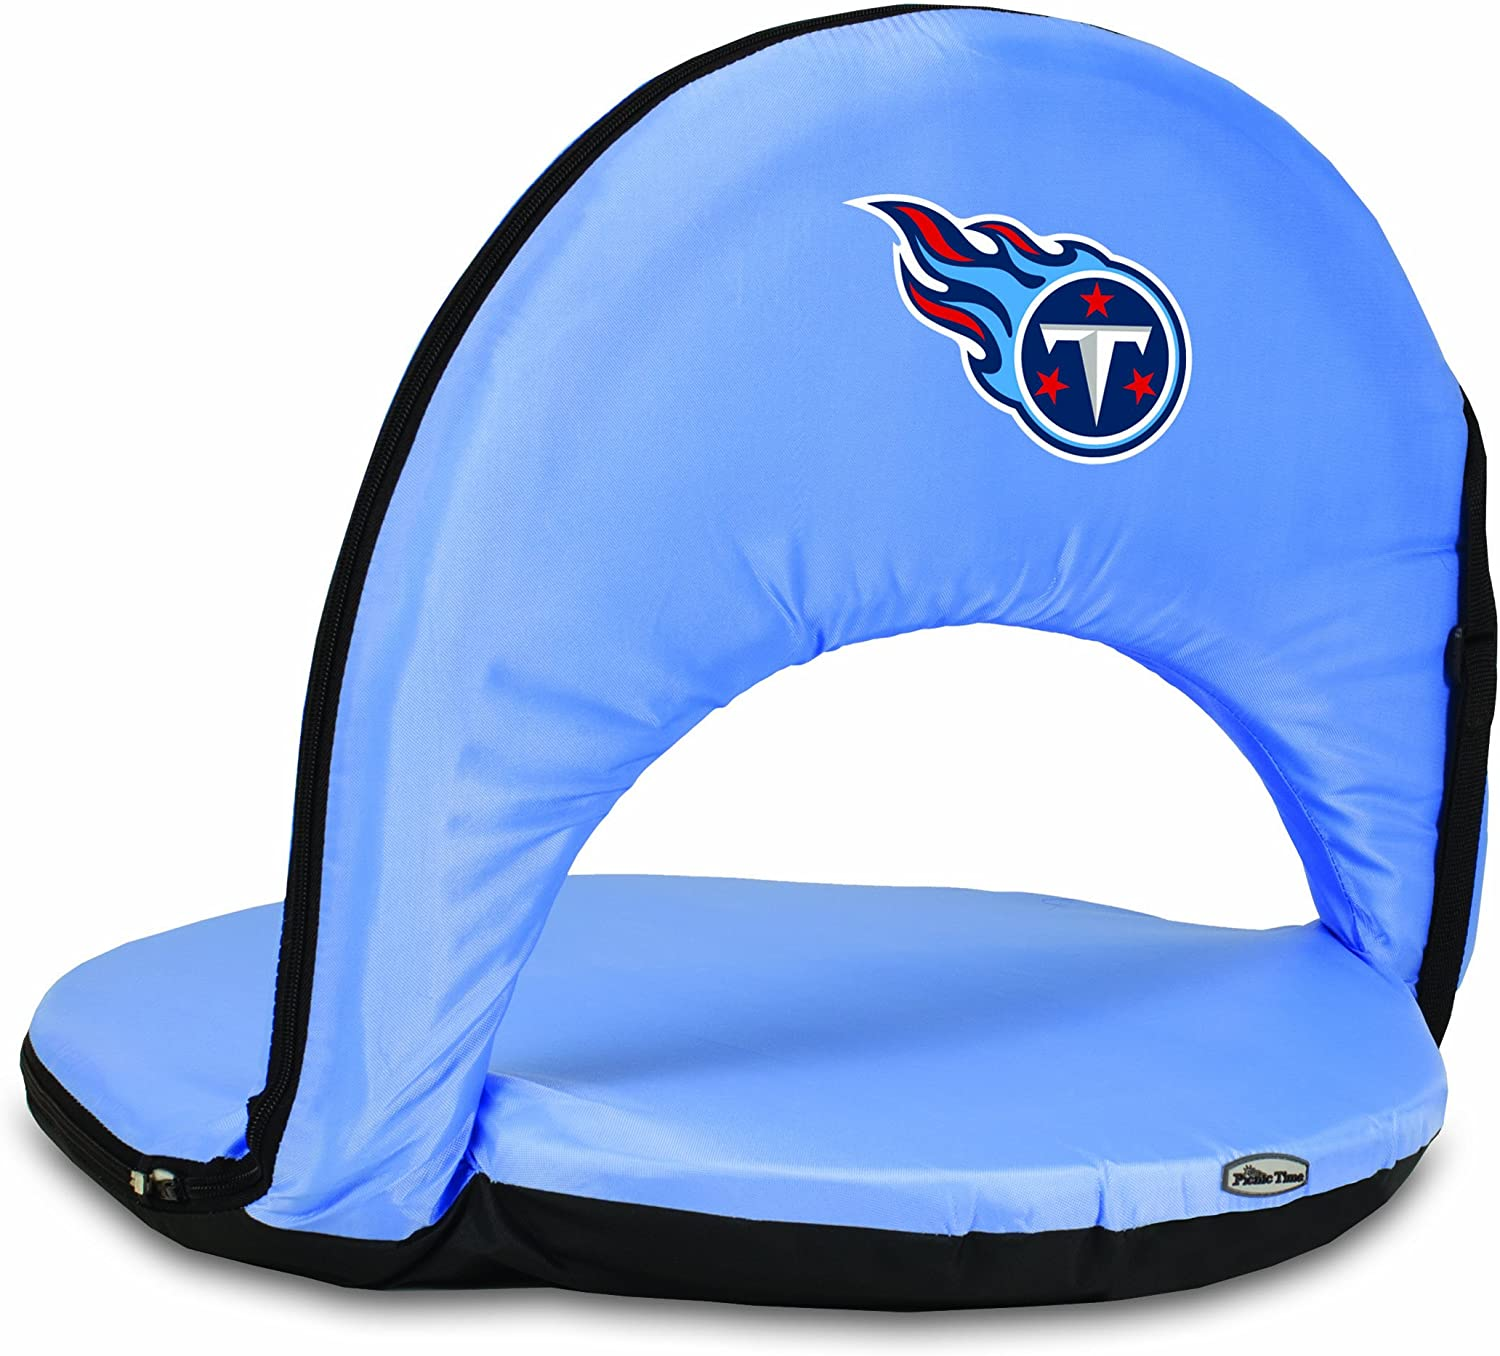 NFL Tennessee Titans Oniva Portable Reclining Seat